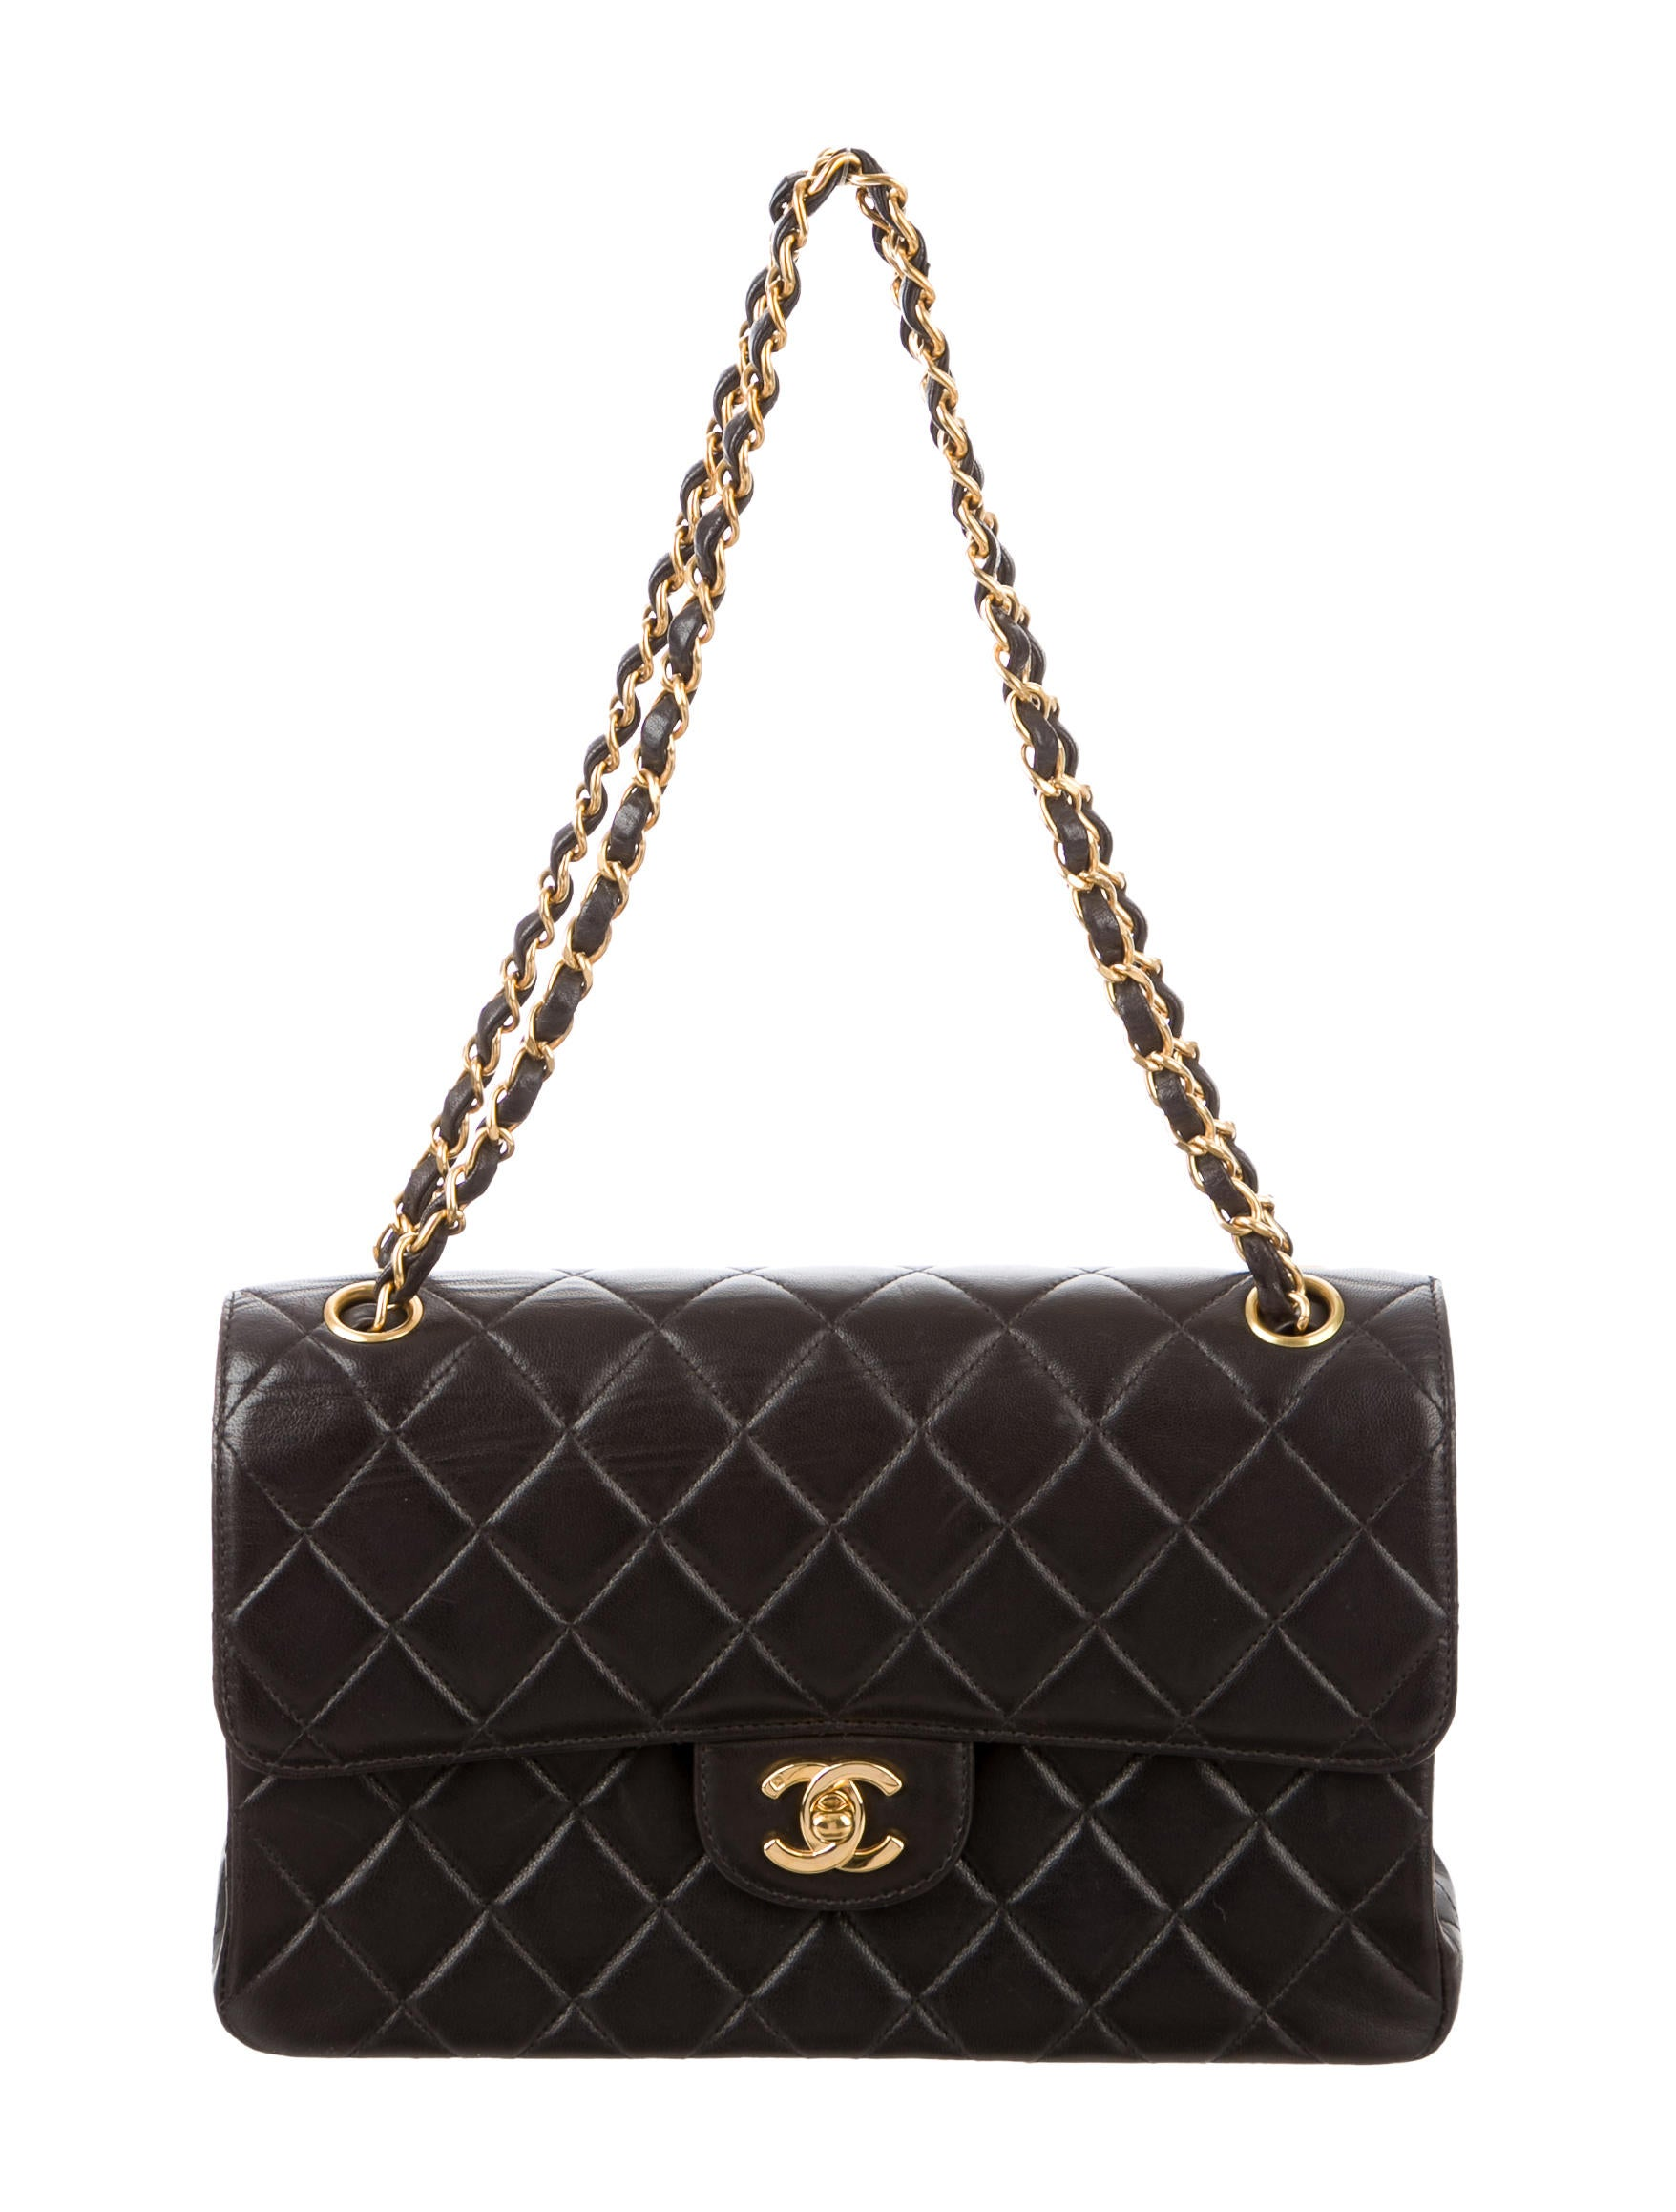 matches. ($ - $2,) Find great deals on the latest styles of Beige quilted handbag. Compare prices & save money on Handbags & Totes.